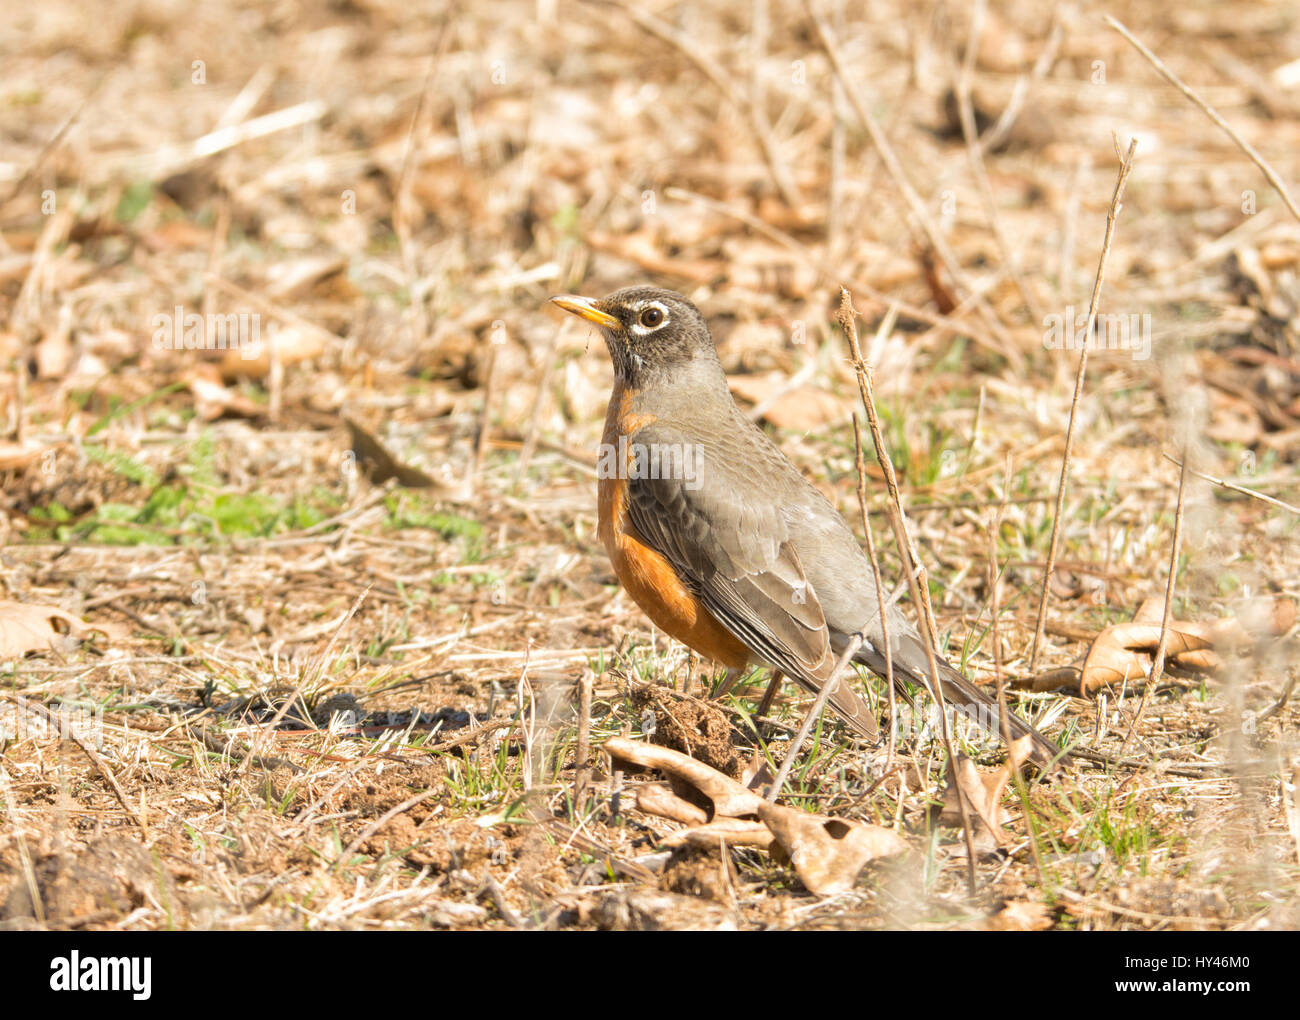 American Robin hiding in plain sight, sitting motionless, camouflaged against dry grass and leaves - Stock Image